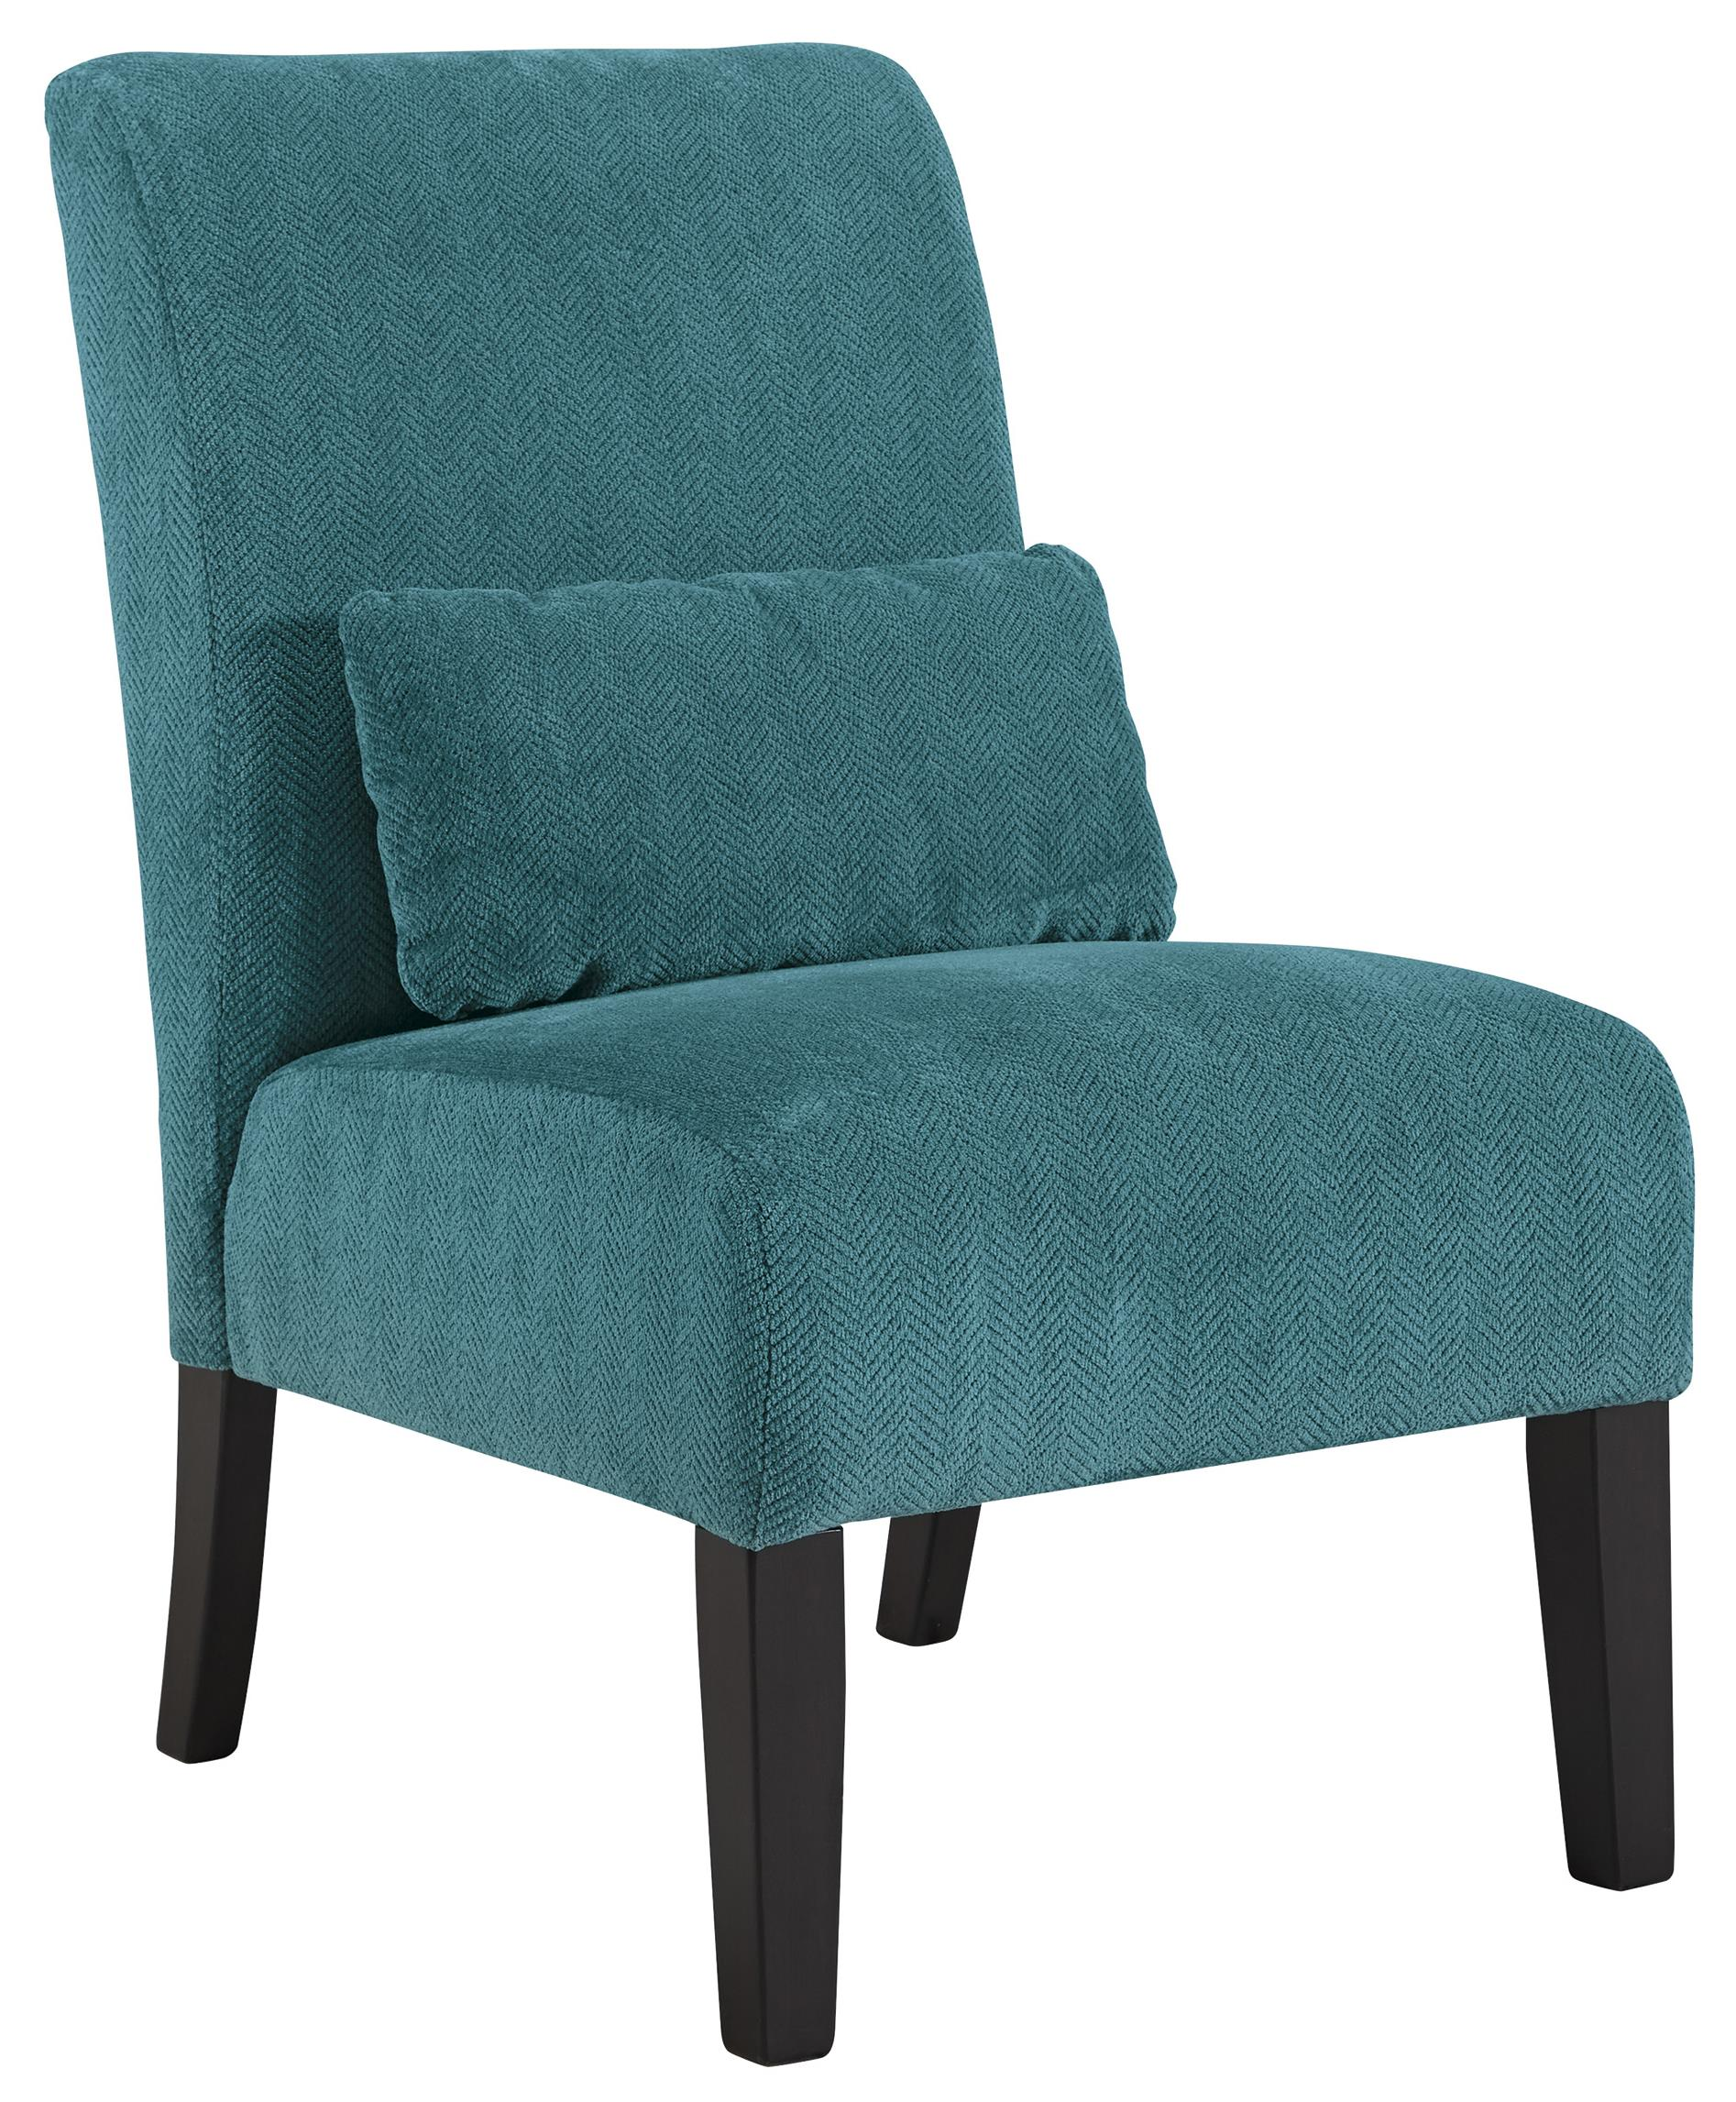 Signature Design by Ashley Annora - Teal Accent Chair - Item Number: 6160460